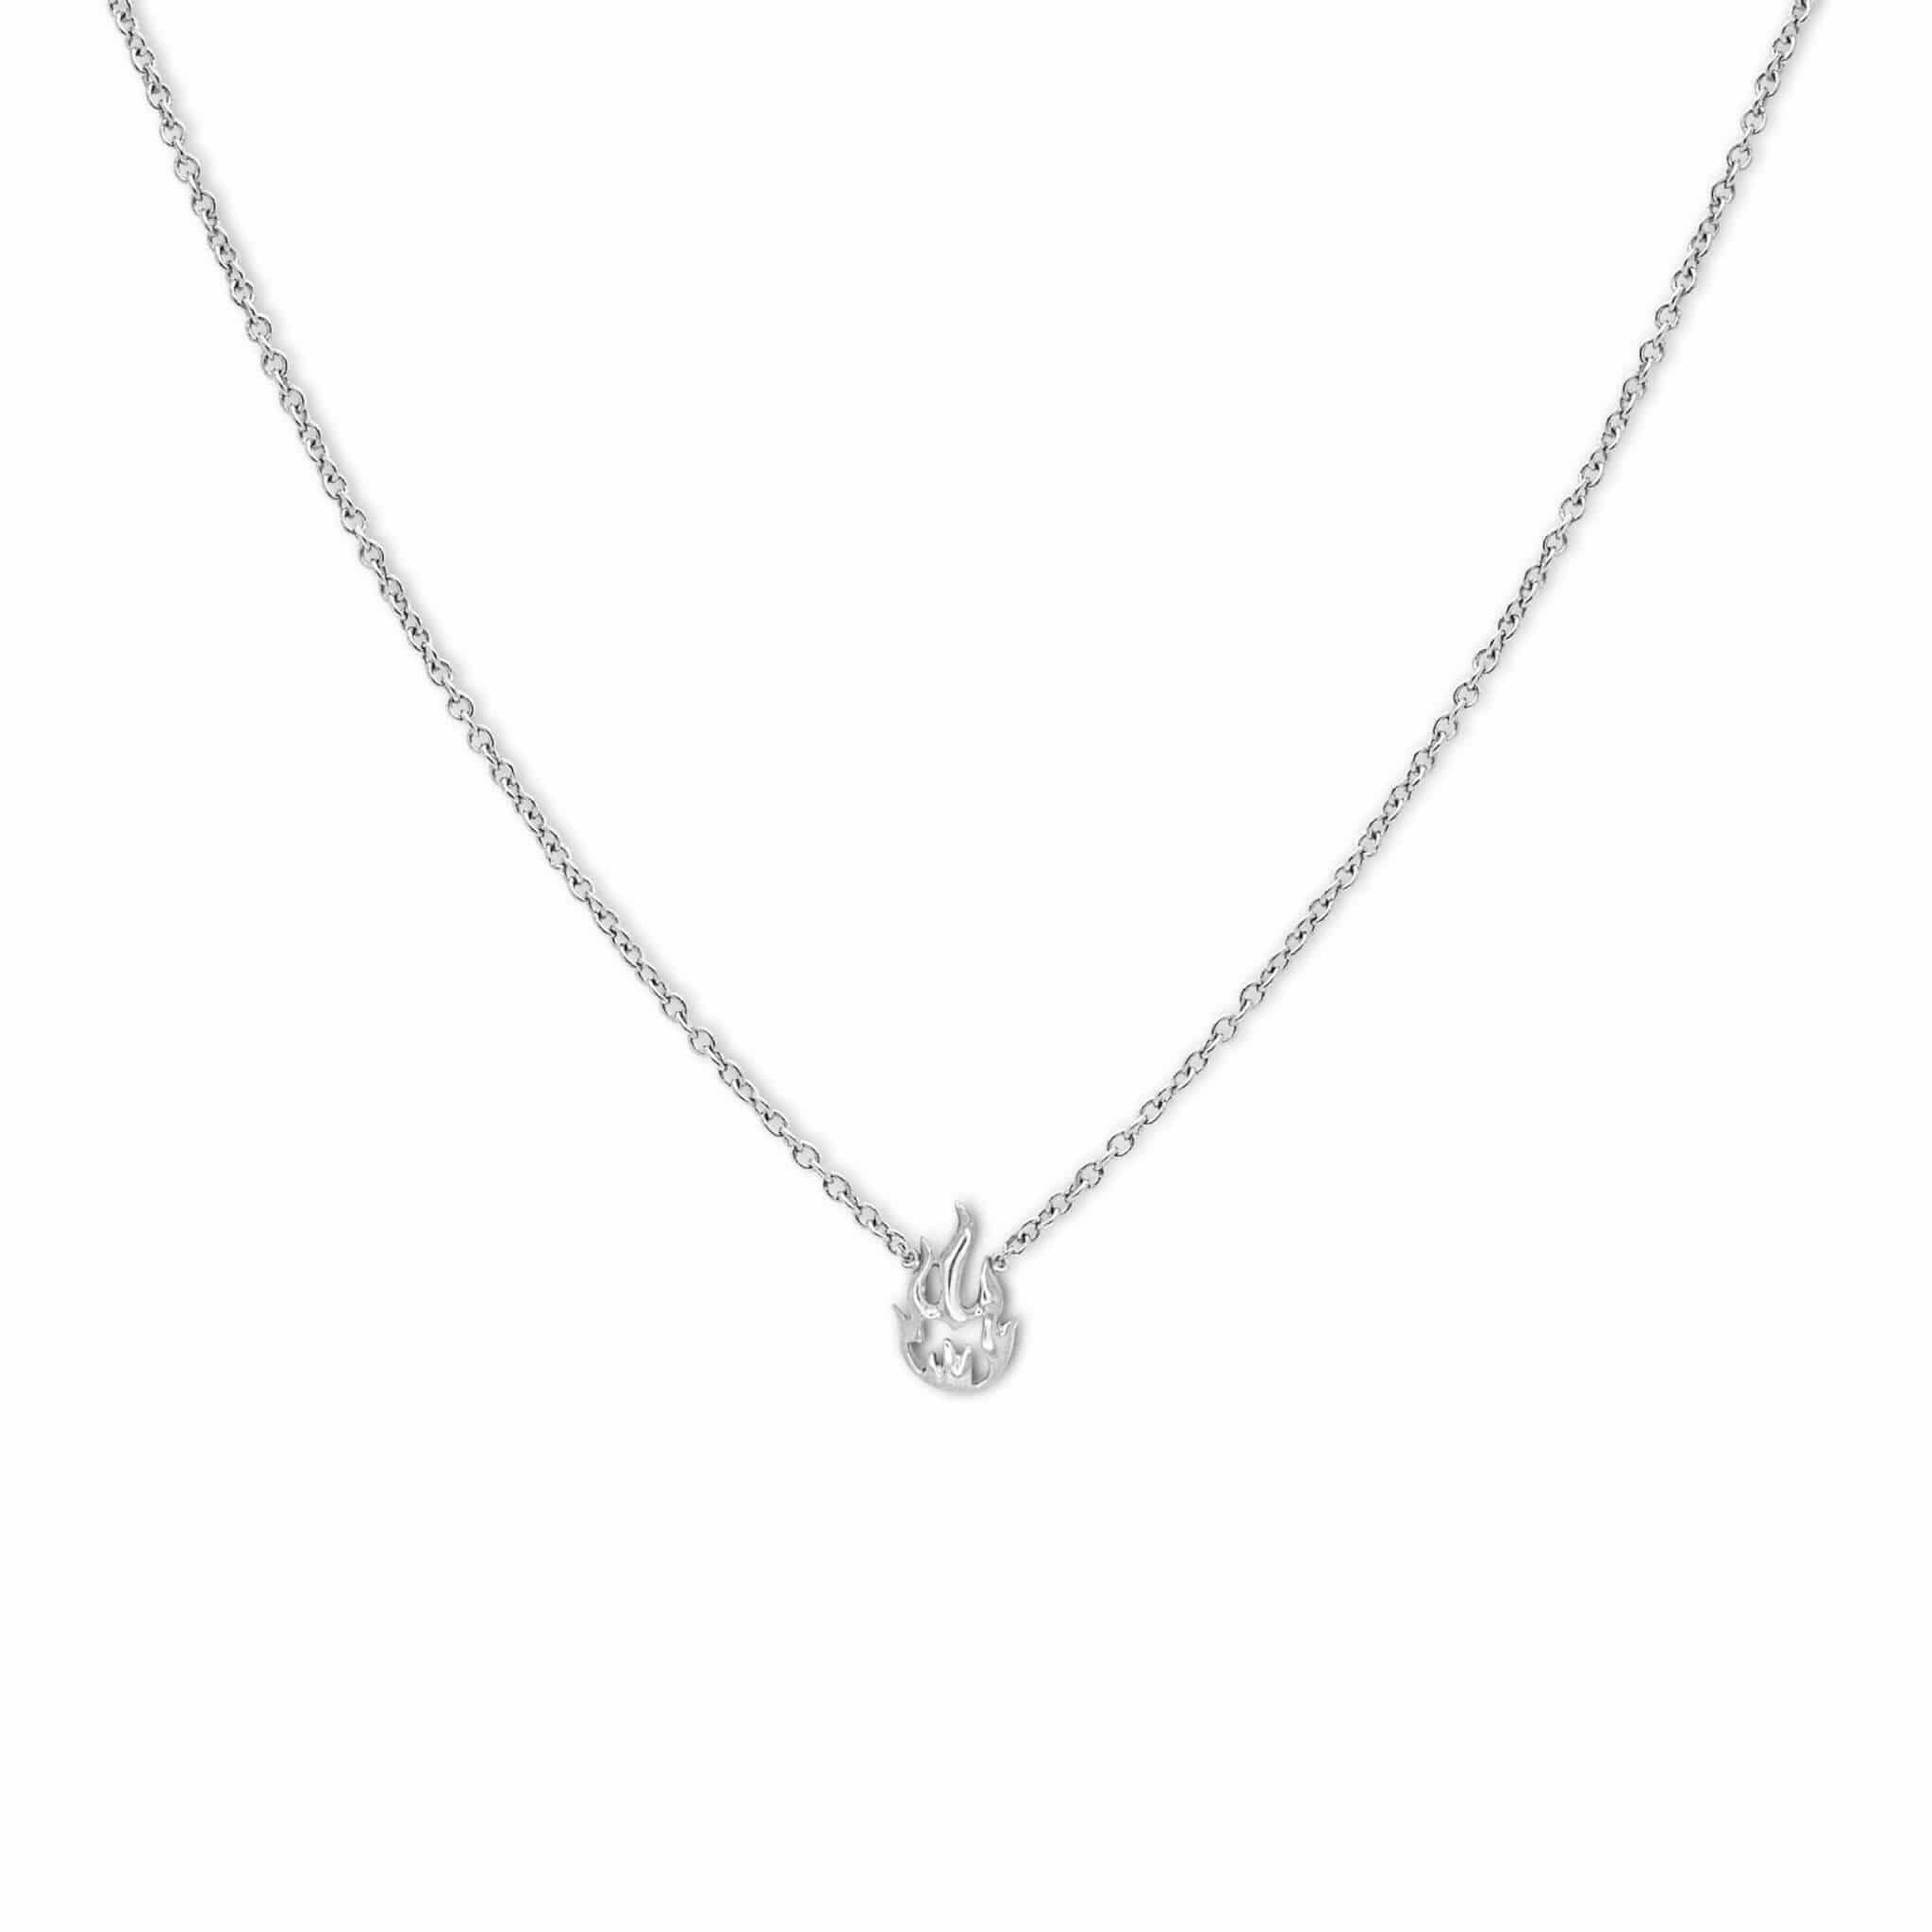 Flamme collier or diamants